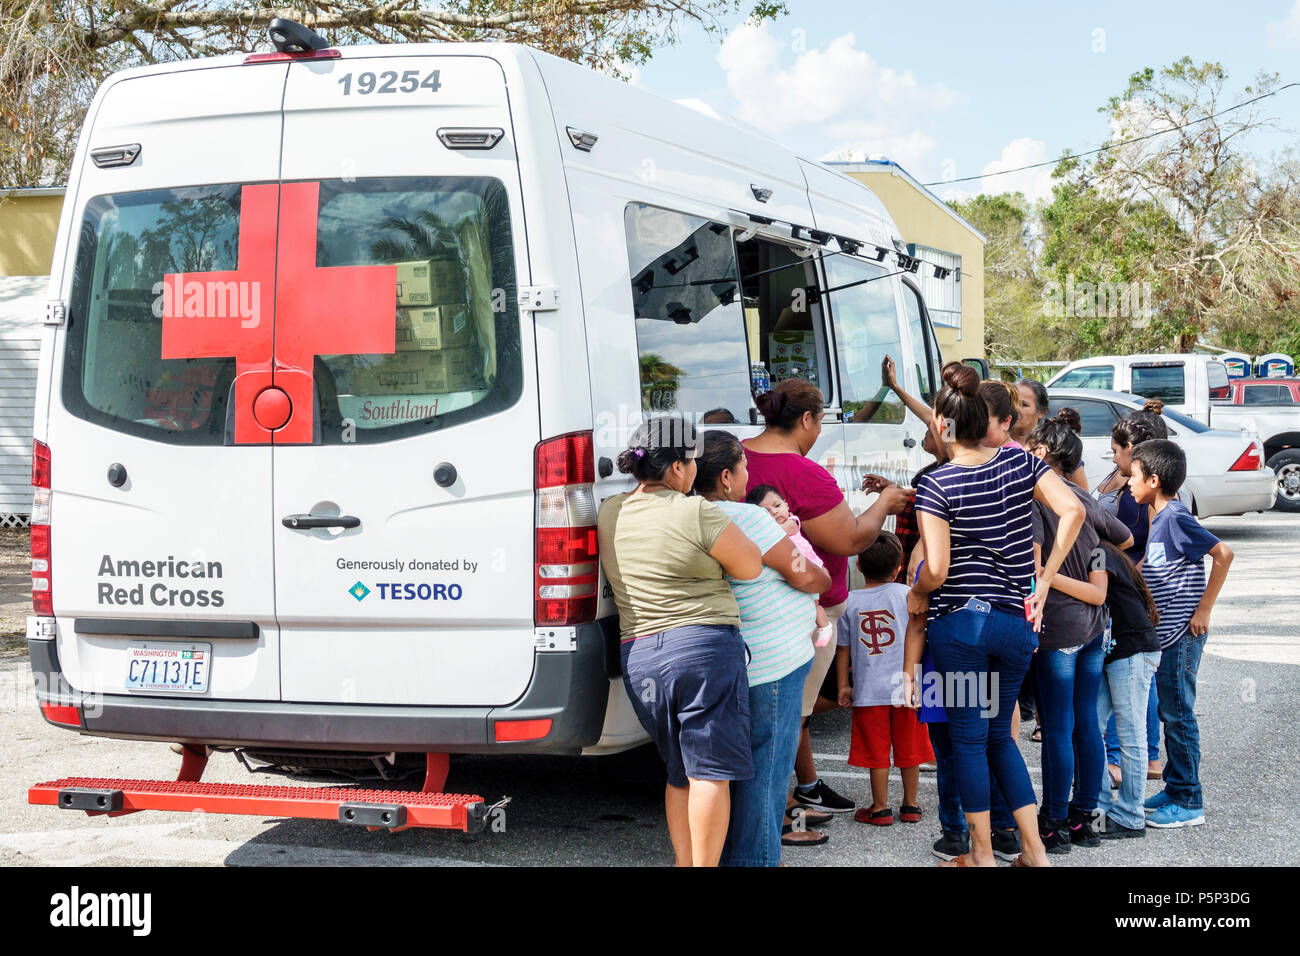 Florida LaBelle after Hurricane Irma storm aid assistance destruction aftermath disaster recovery relief Red Cross Disaster Relief volunteer food van - Stock Image